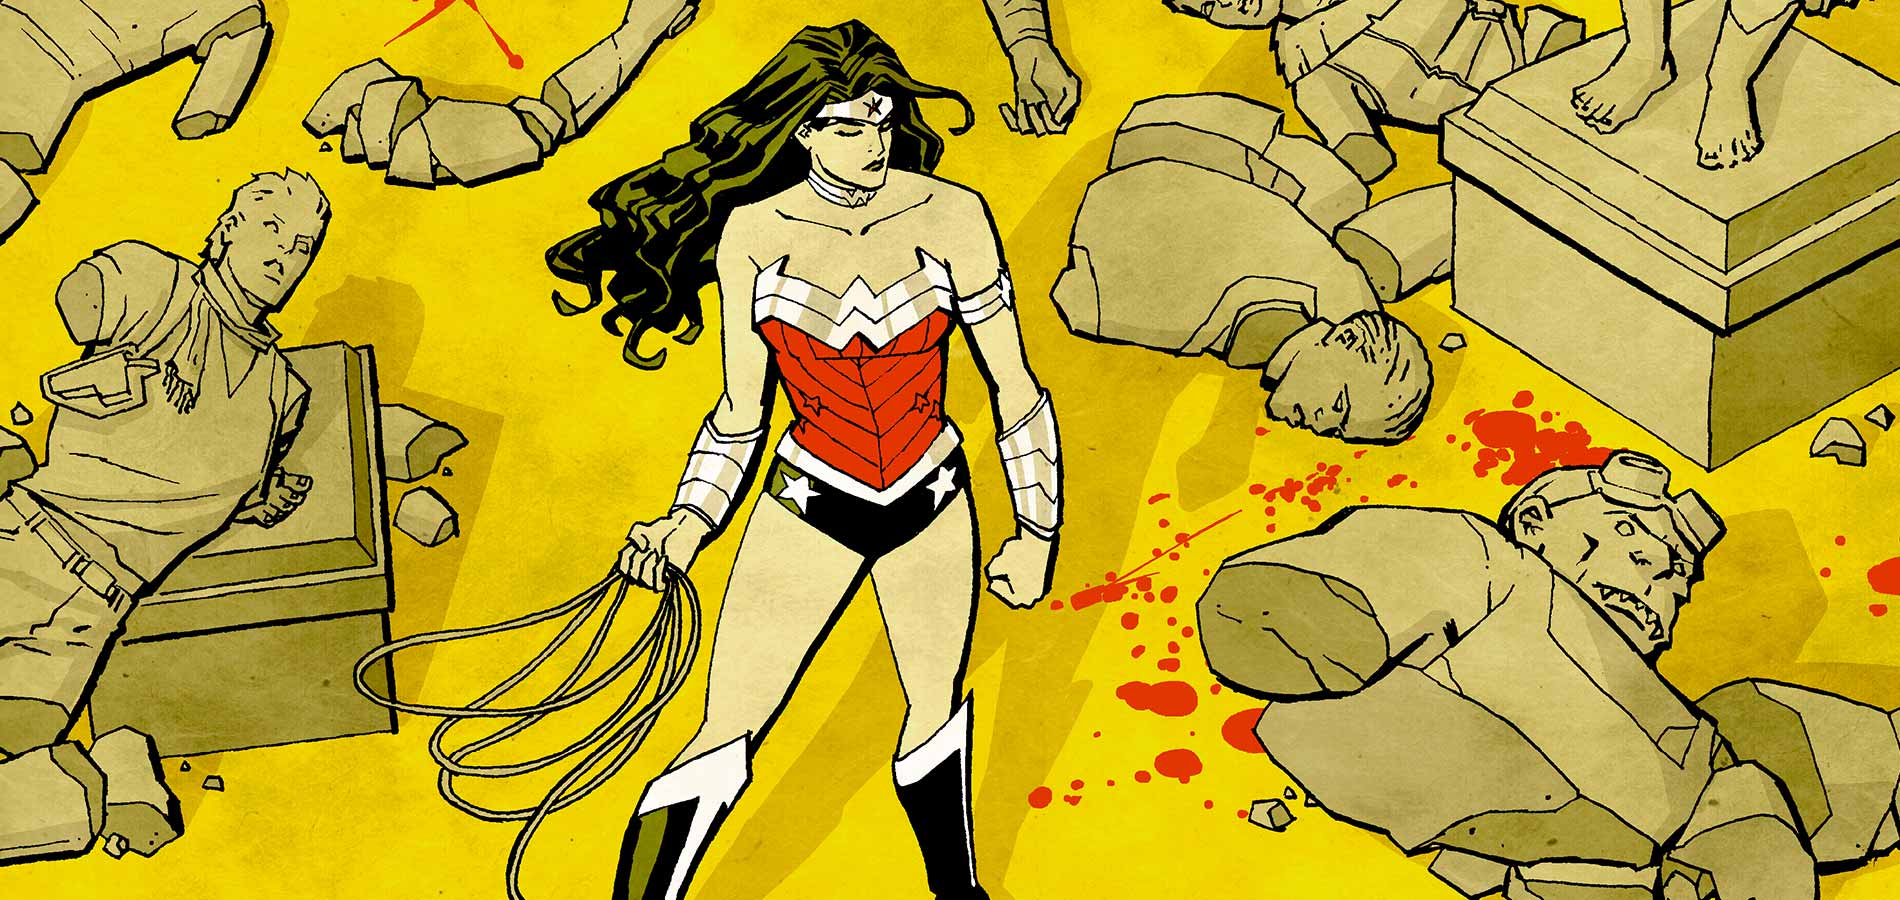 This Week in WWAC History: Wonder Woman and Aquaman